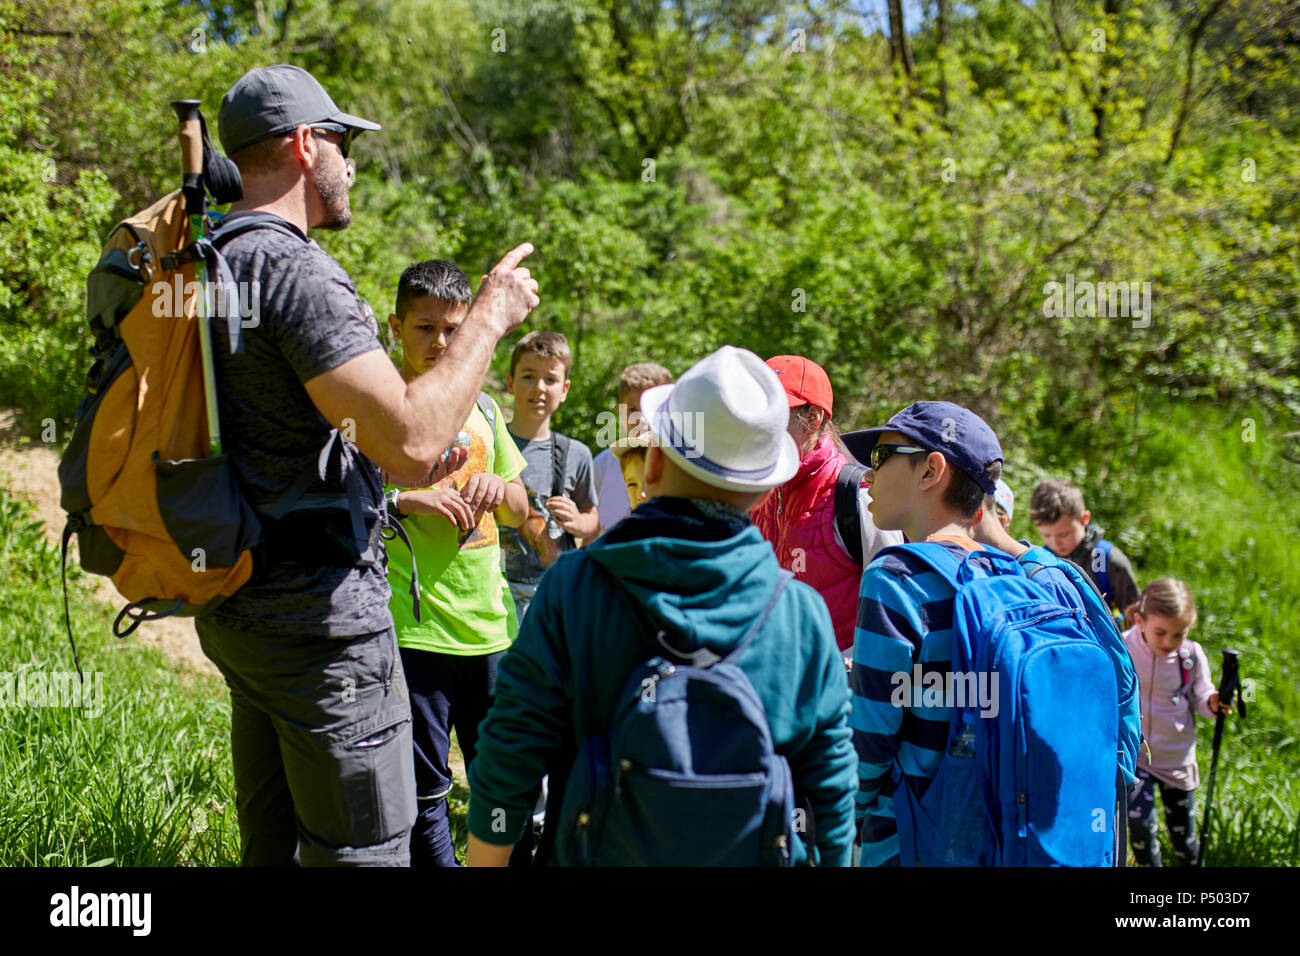 Man talking to kids on a field trip on trail Stock Photo